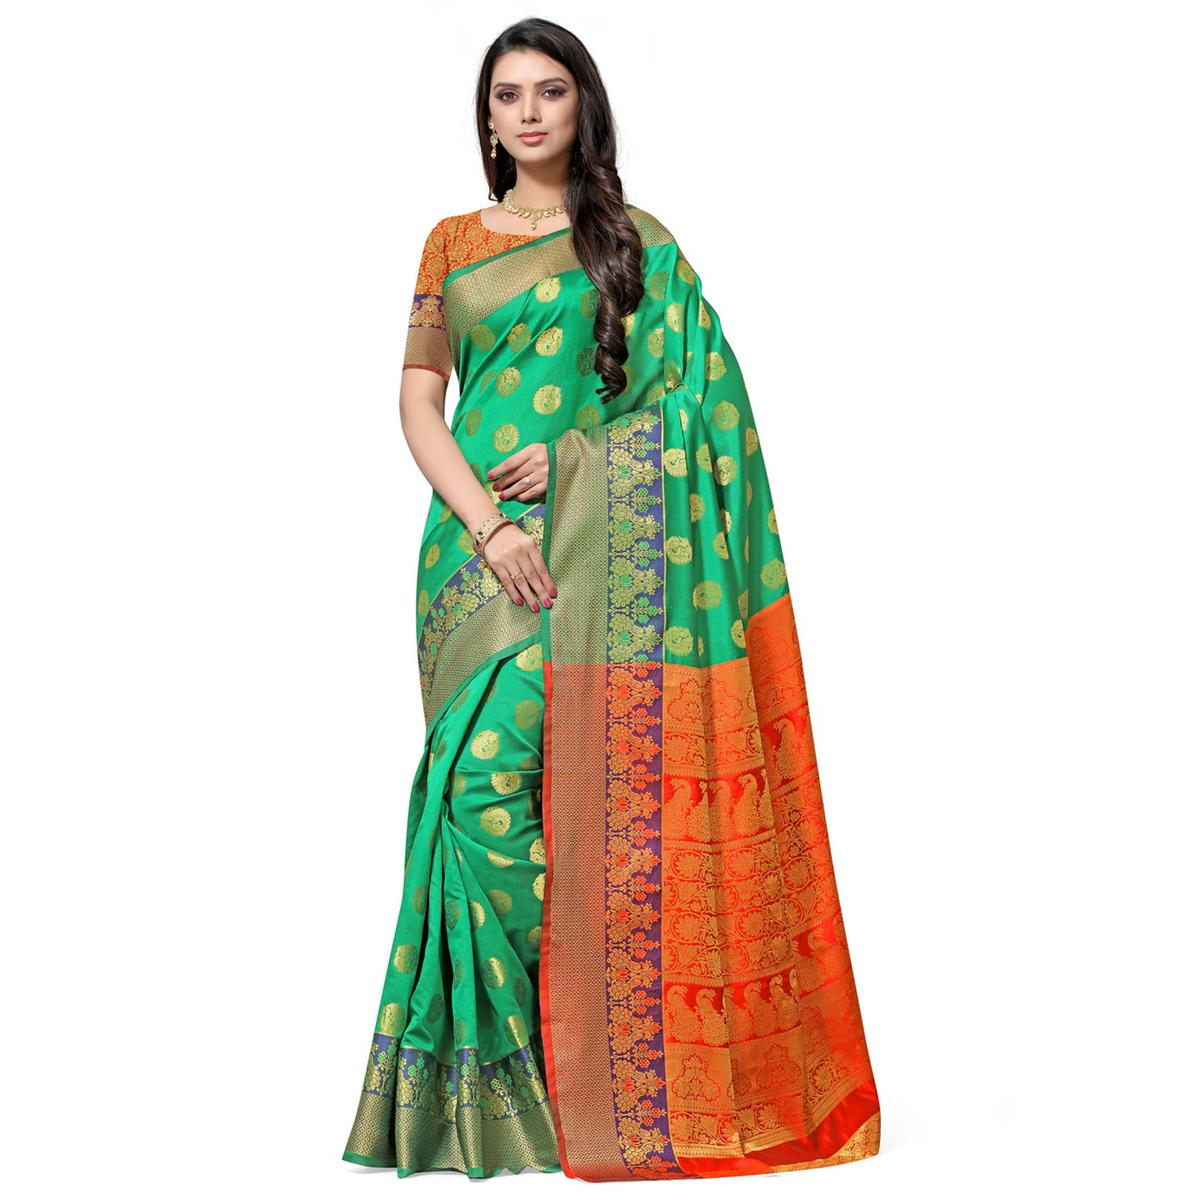 Arresting Green Colored Festive Wear Woven Kota Art Silk Banarasi Saree